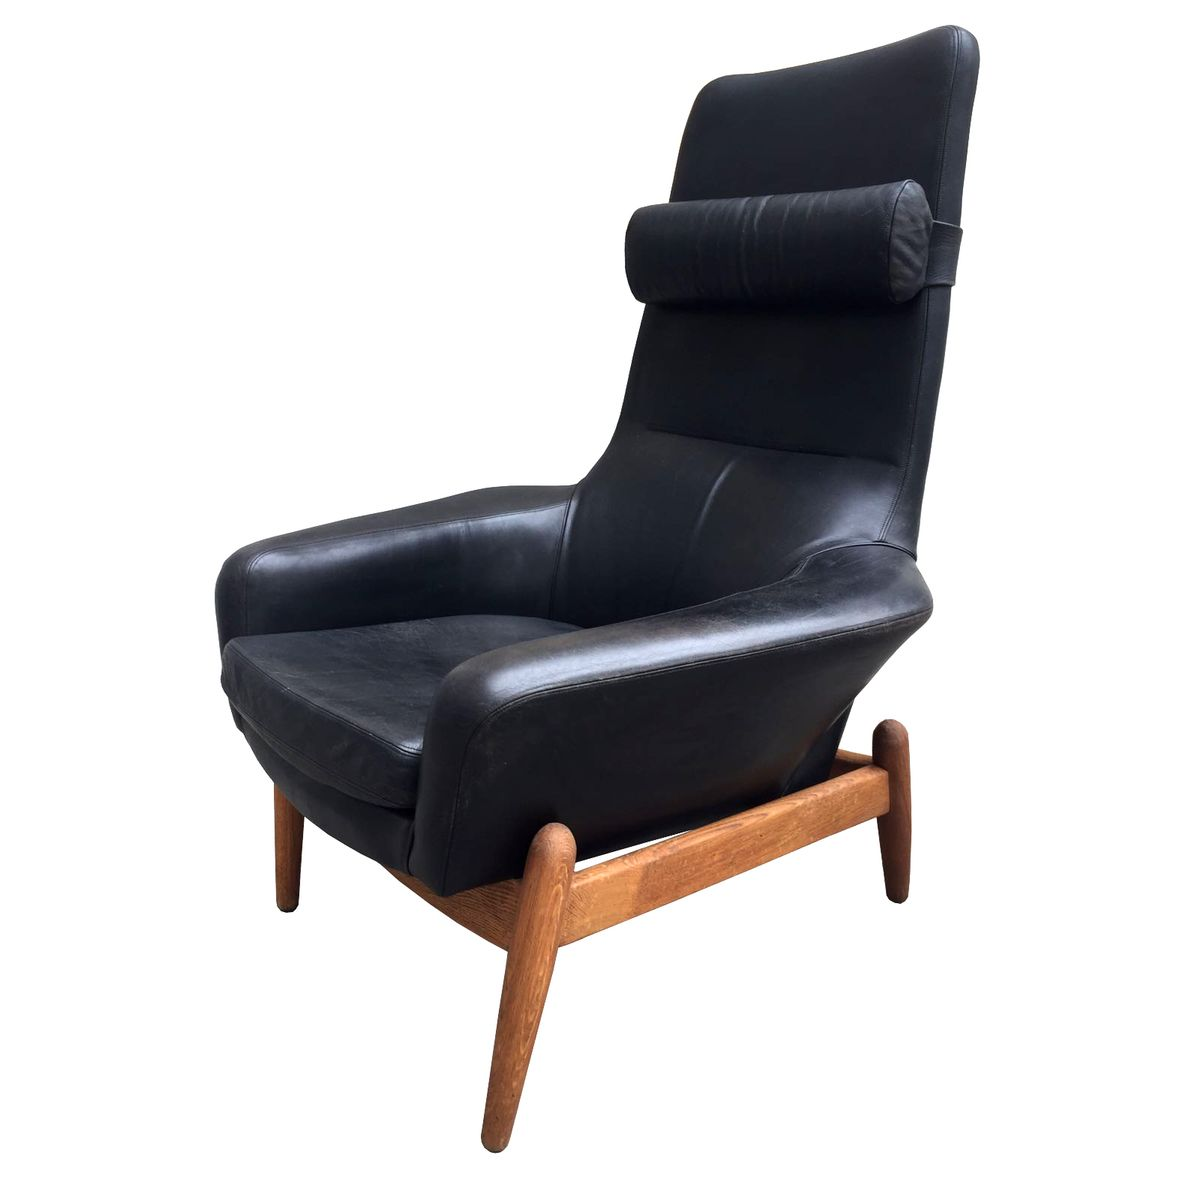 This sculptural pair of lounge chairs by ib kofod larsen is no longer - Mid Century Danish Black Leather Chair By Ib Kofod Larsen For Bovenkamp